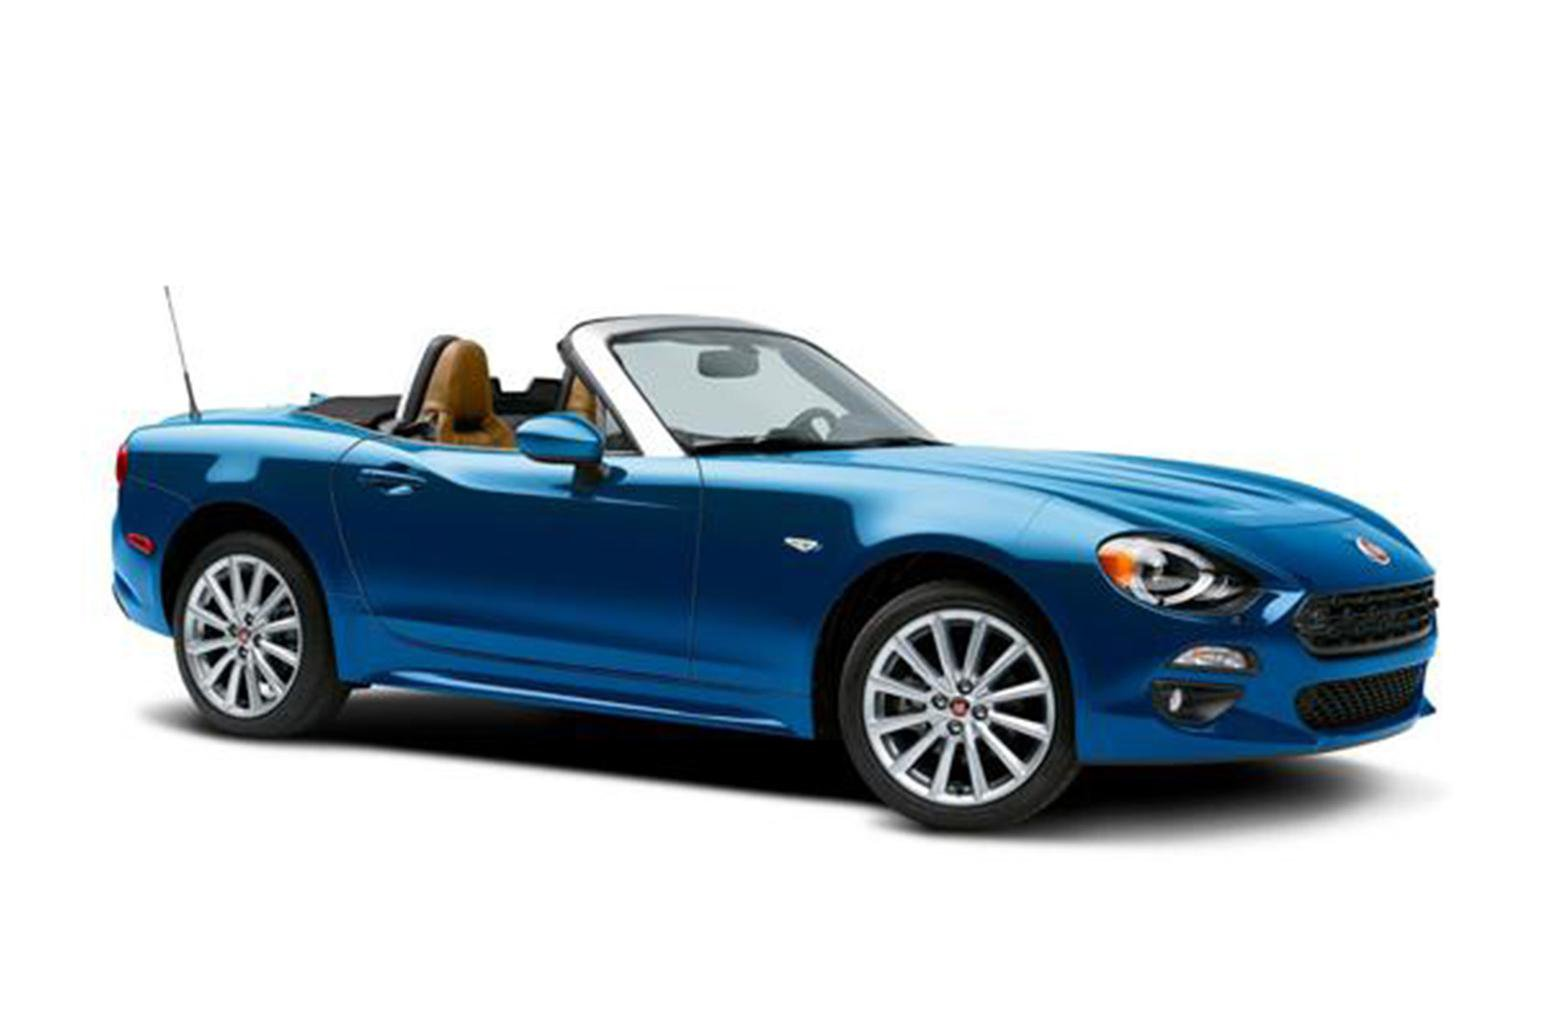 Fiat 124 Spider revealed - show pictures and details